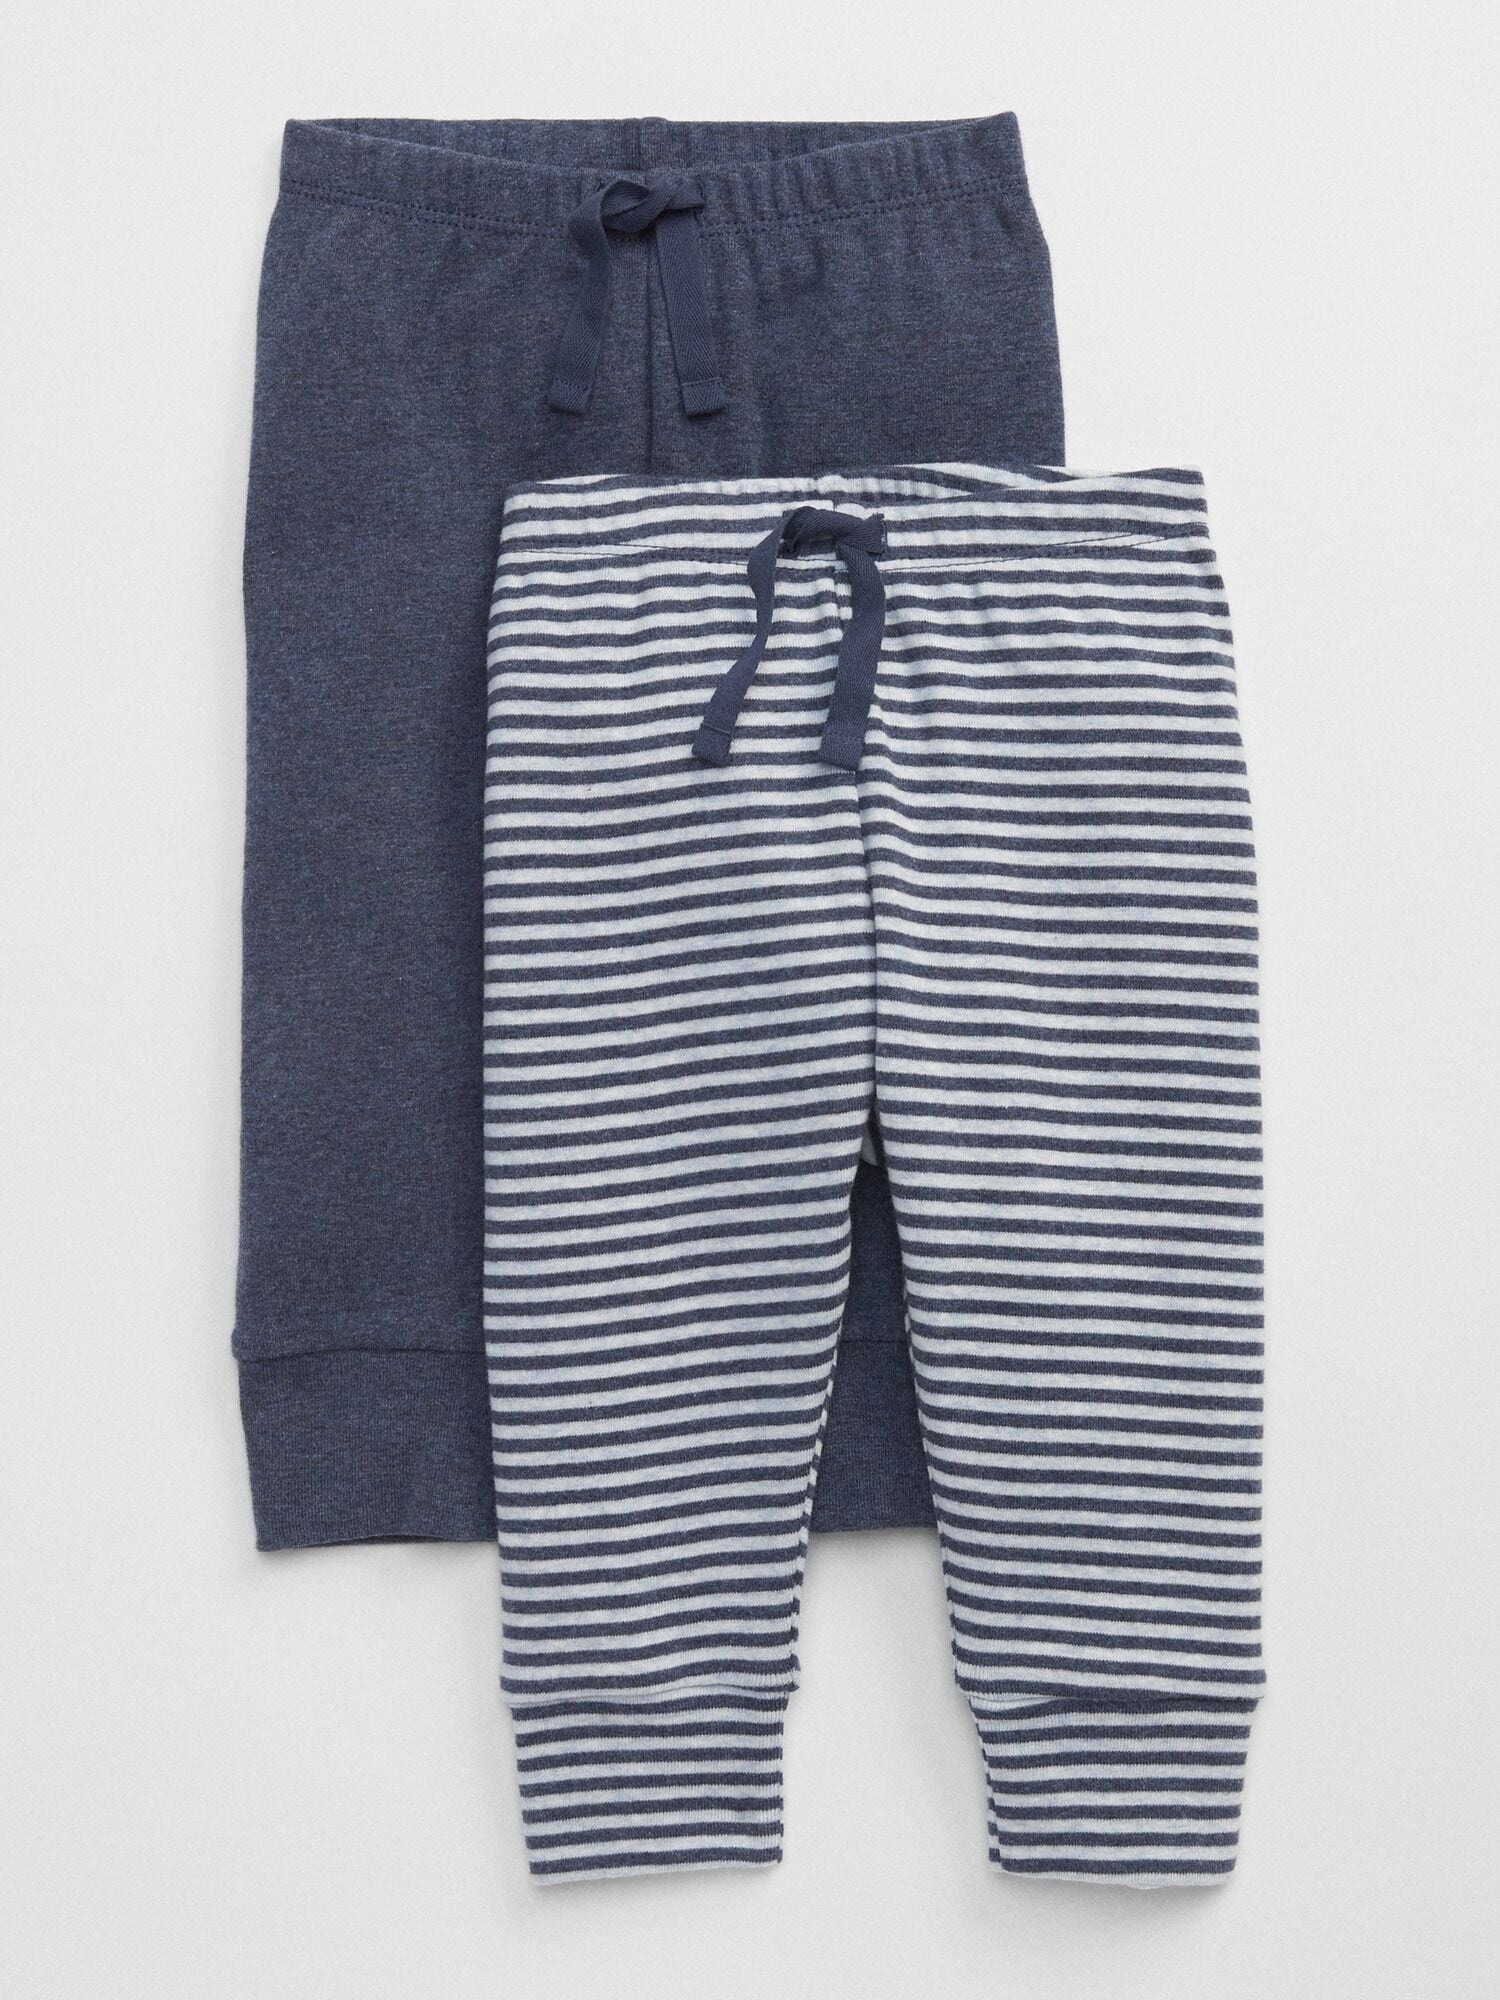 White Rugby Striped Cotton Knit Shorts GAP Baby Boy Size 6-12 Months Navy Blue